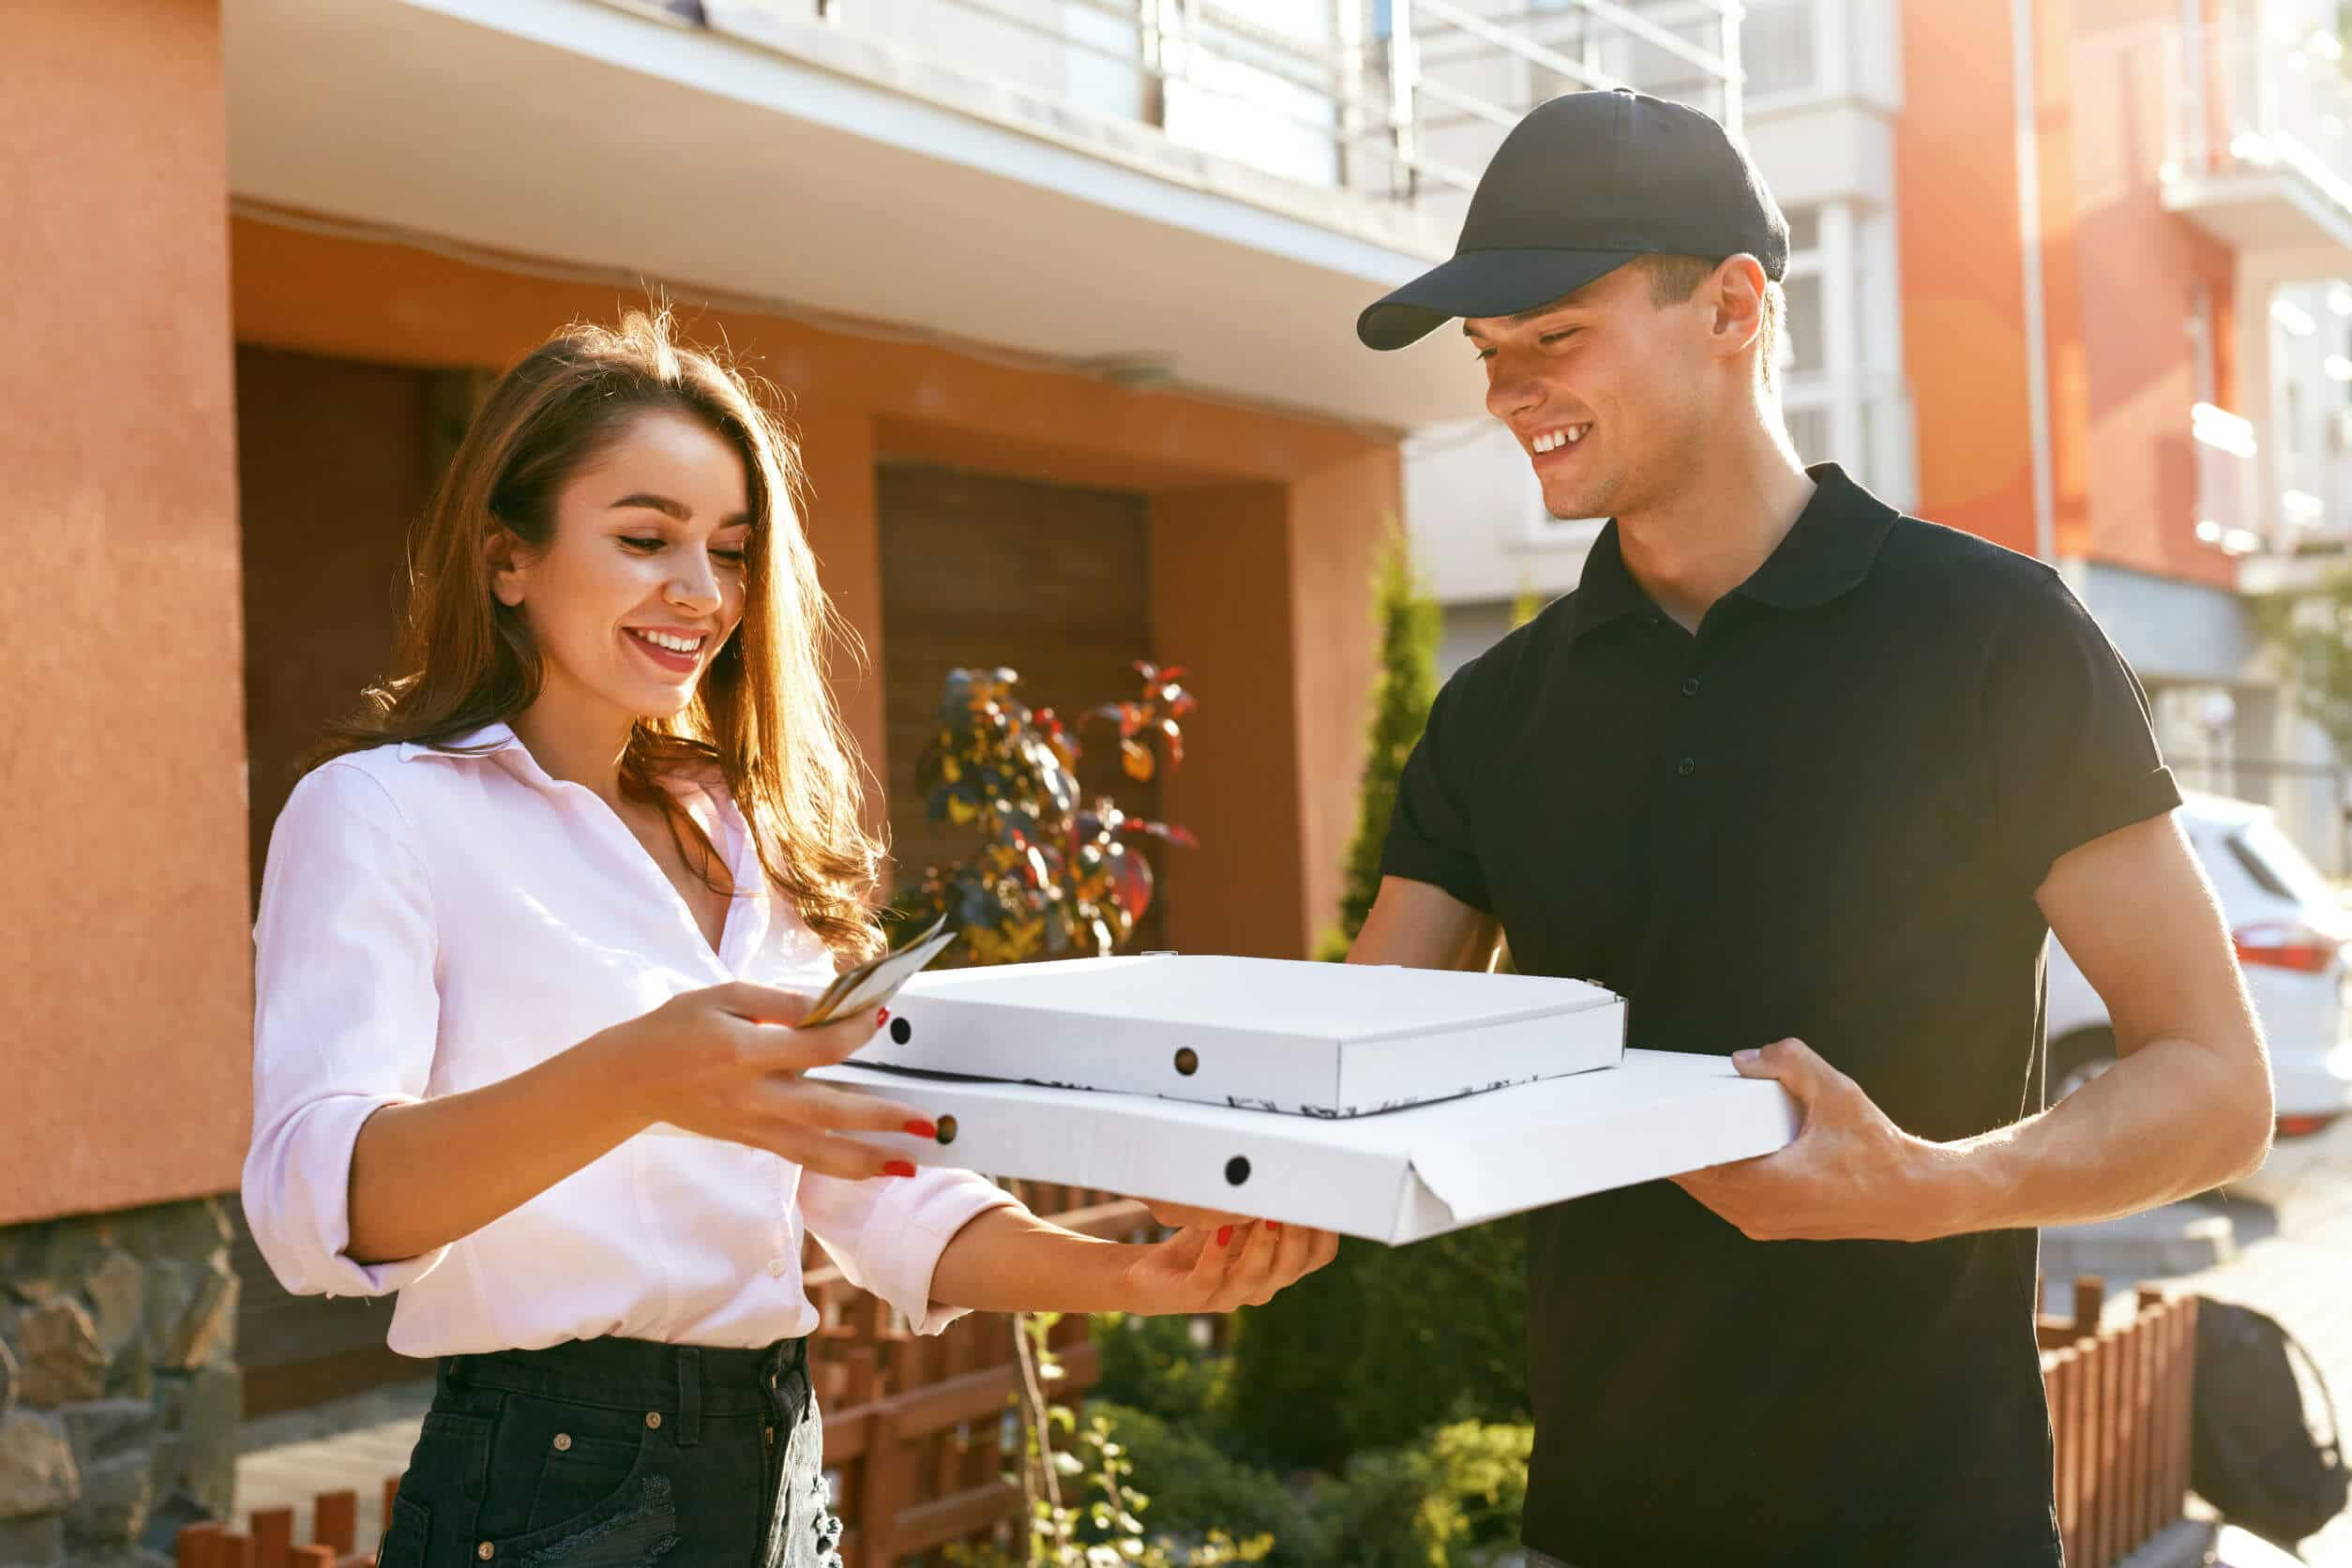 Pizza Delivery. Courier Giving Woman Boxes With Food Outdoors. Client Receiving Order. High Resolution